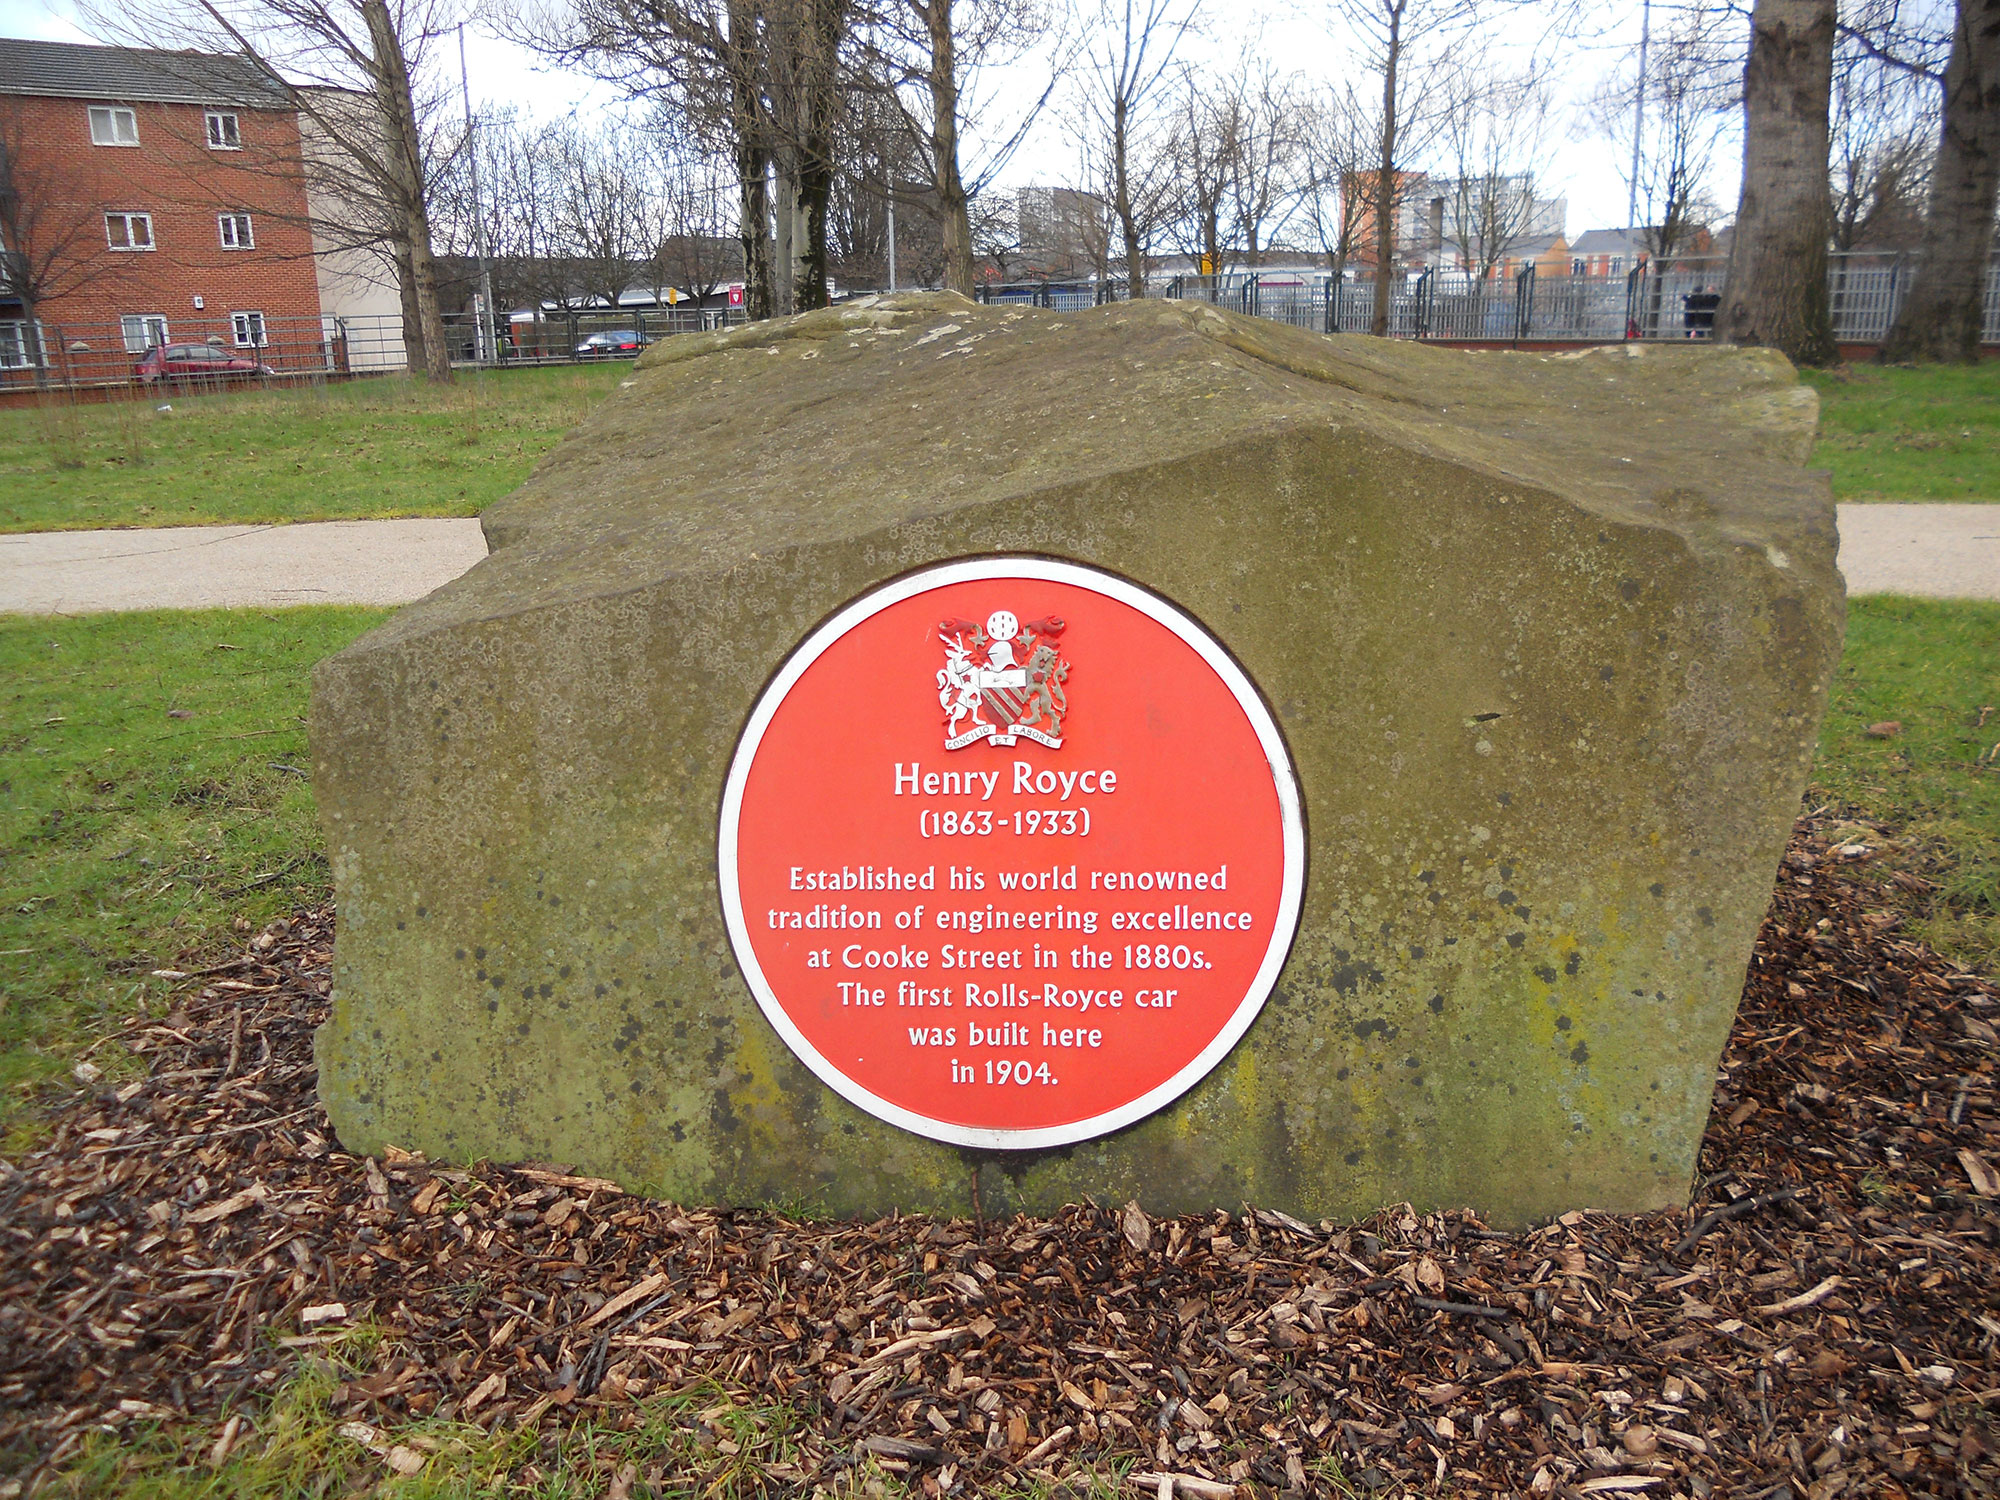 Henry Royce plaque in Hulme Park